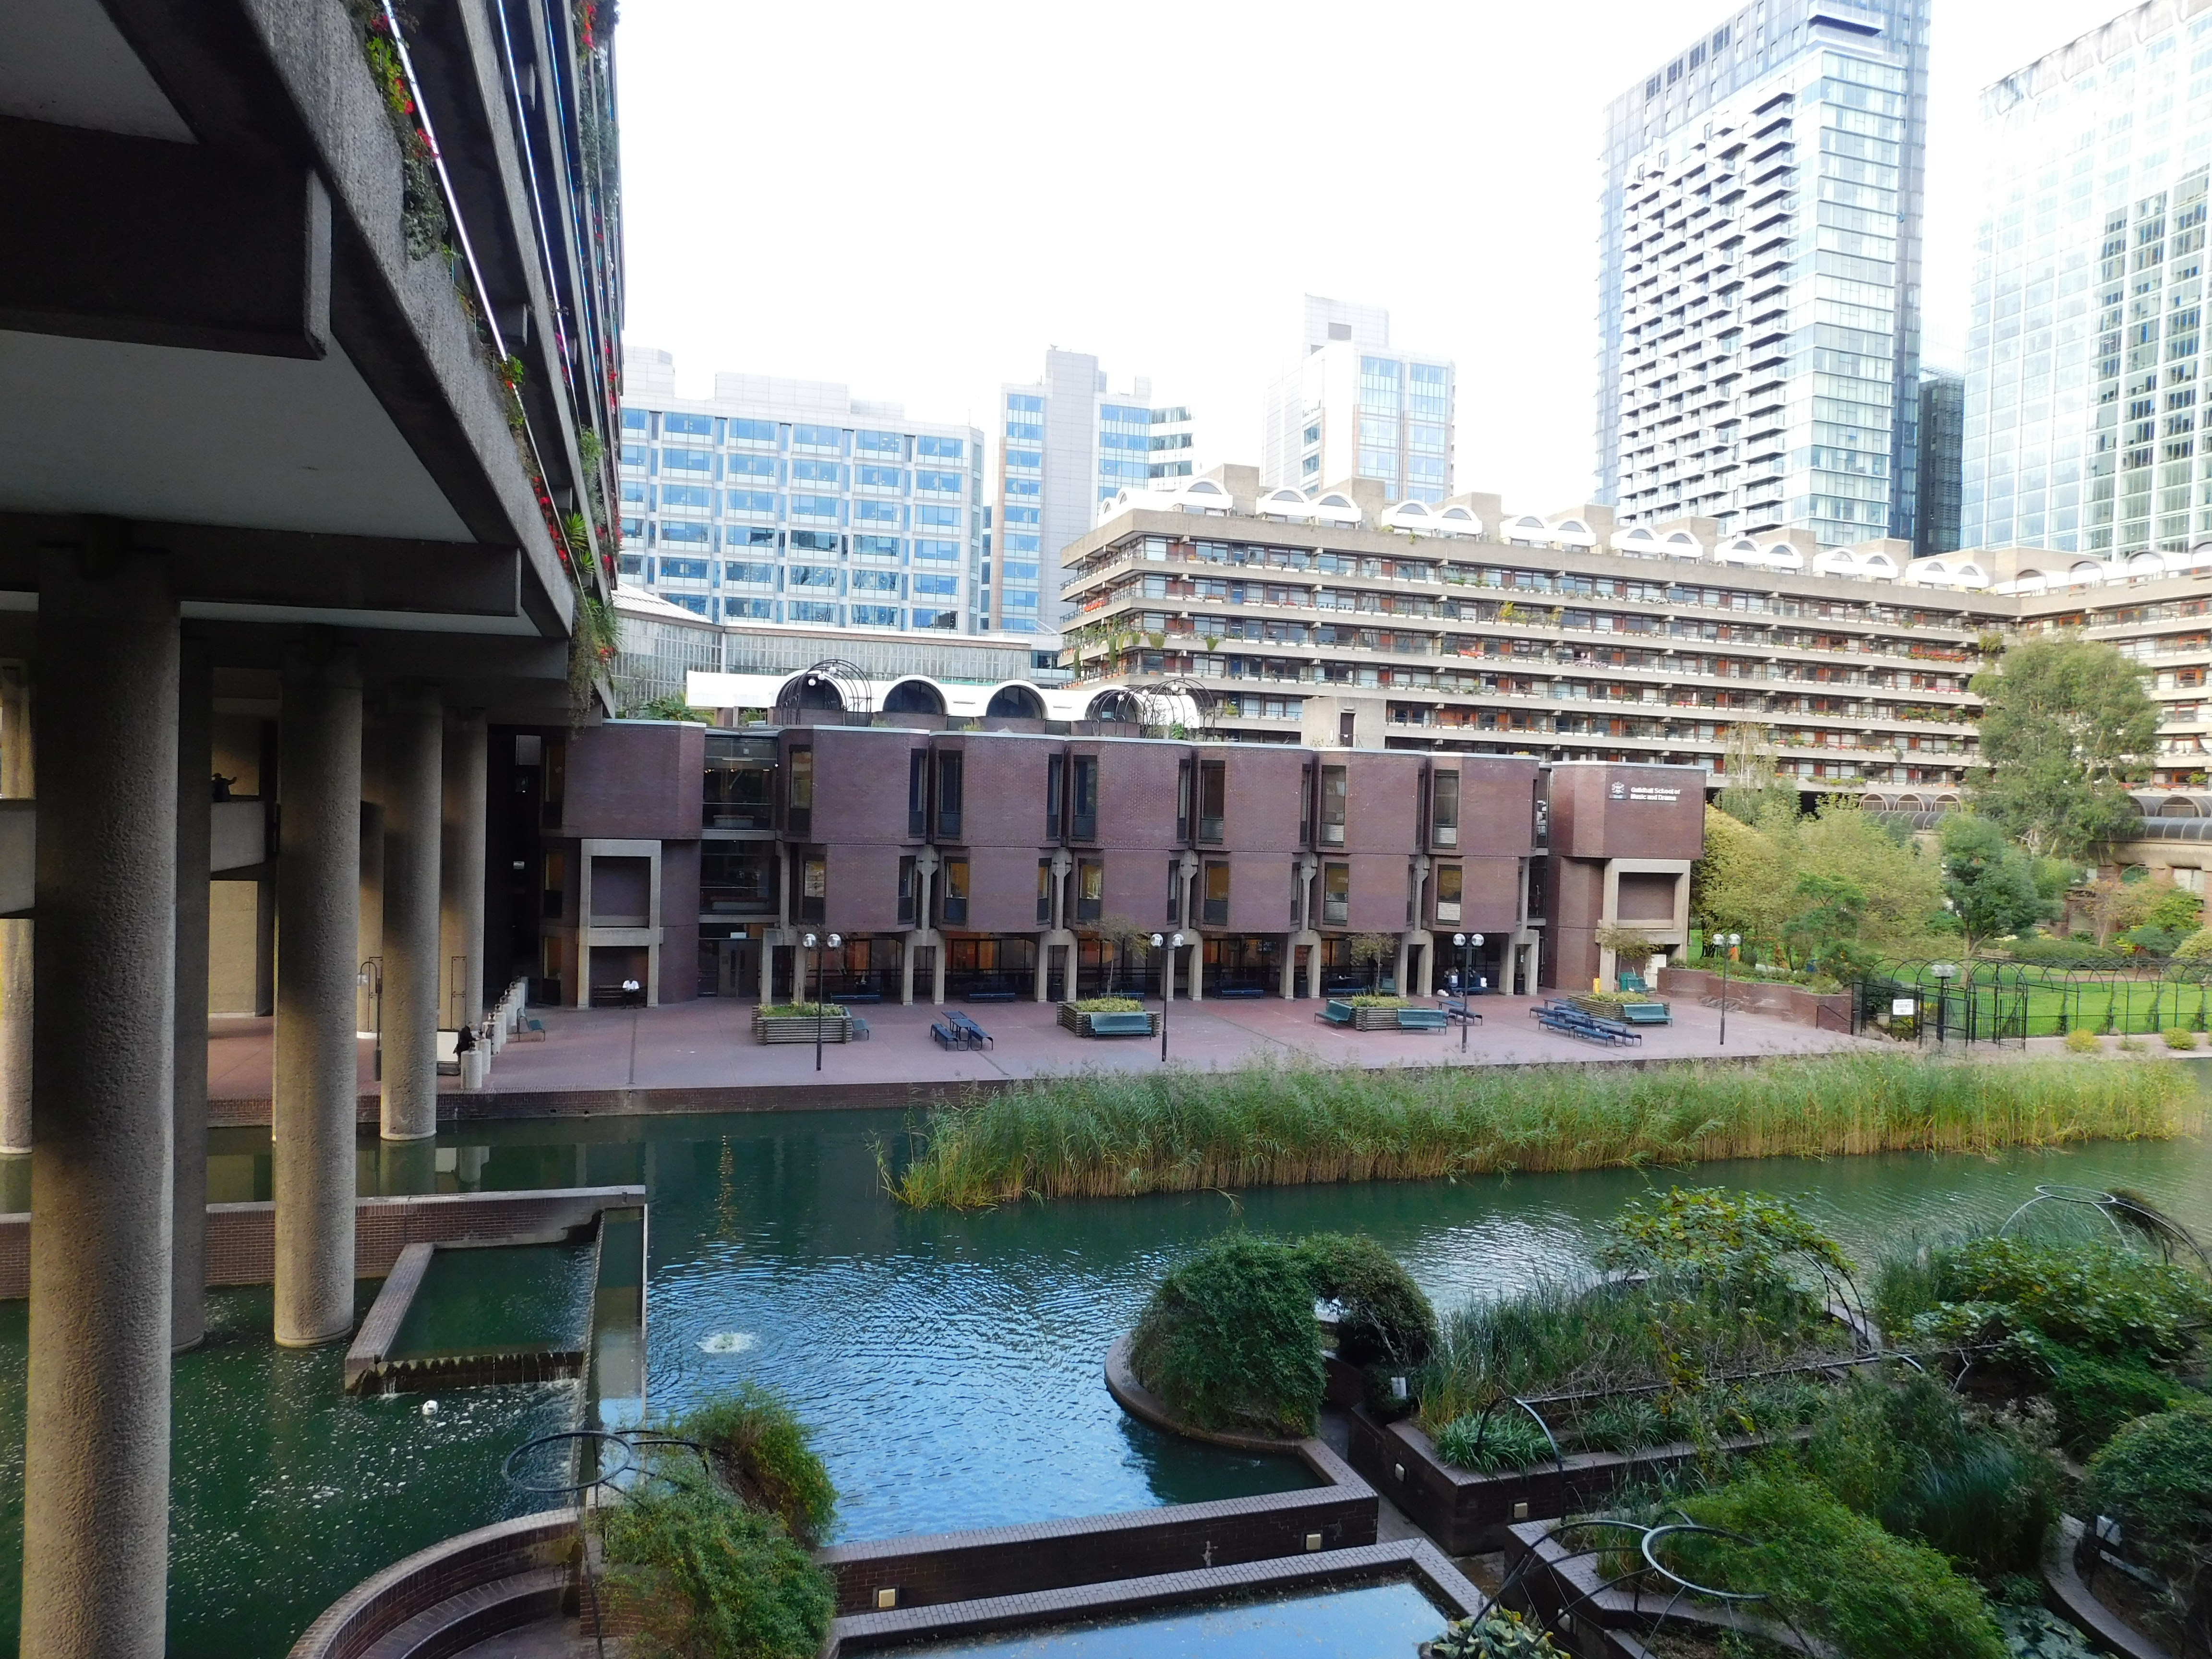 Guildhall_School_of_Music_and_Drama,_Barbican_Estate,_London_2